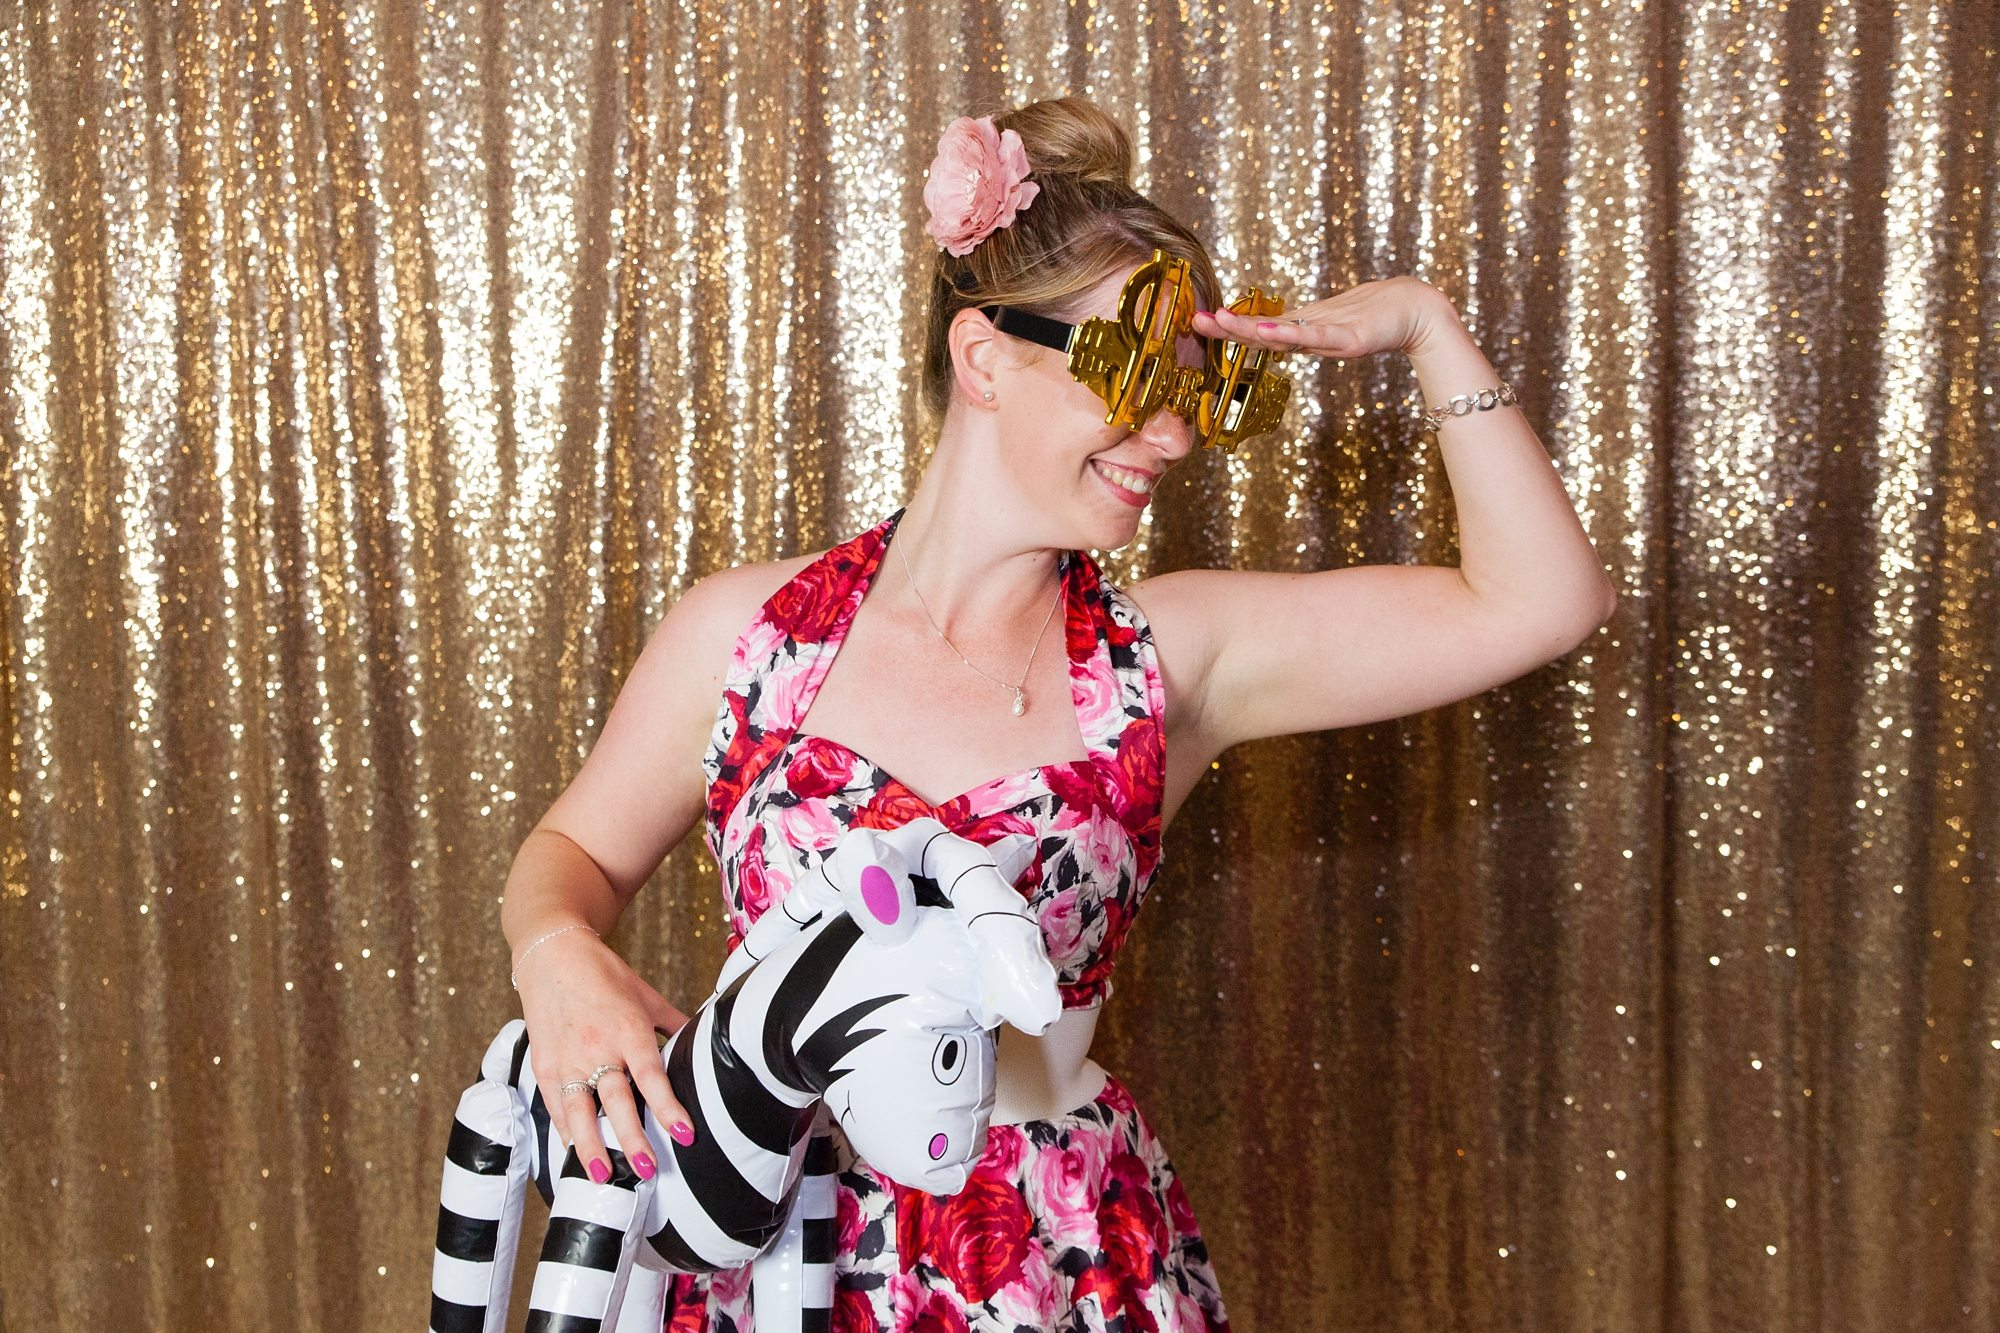 wedding guest wearing floral dress with silly glasses and inflatable zebra